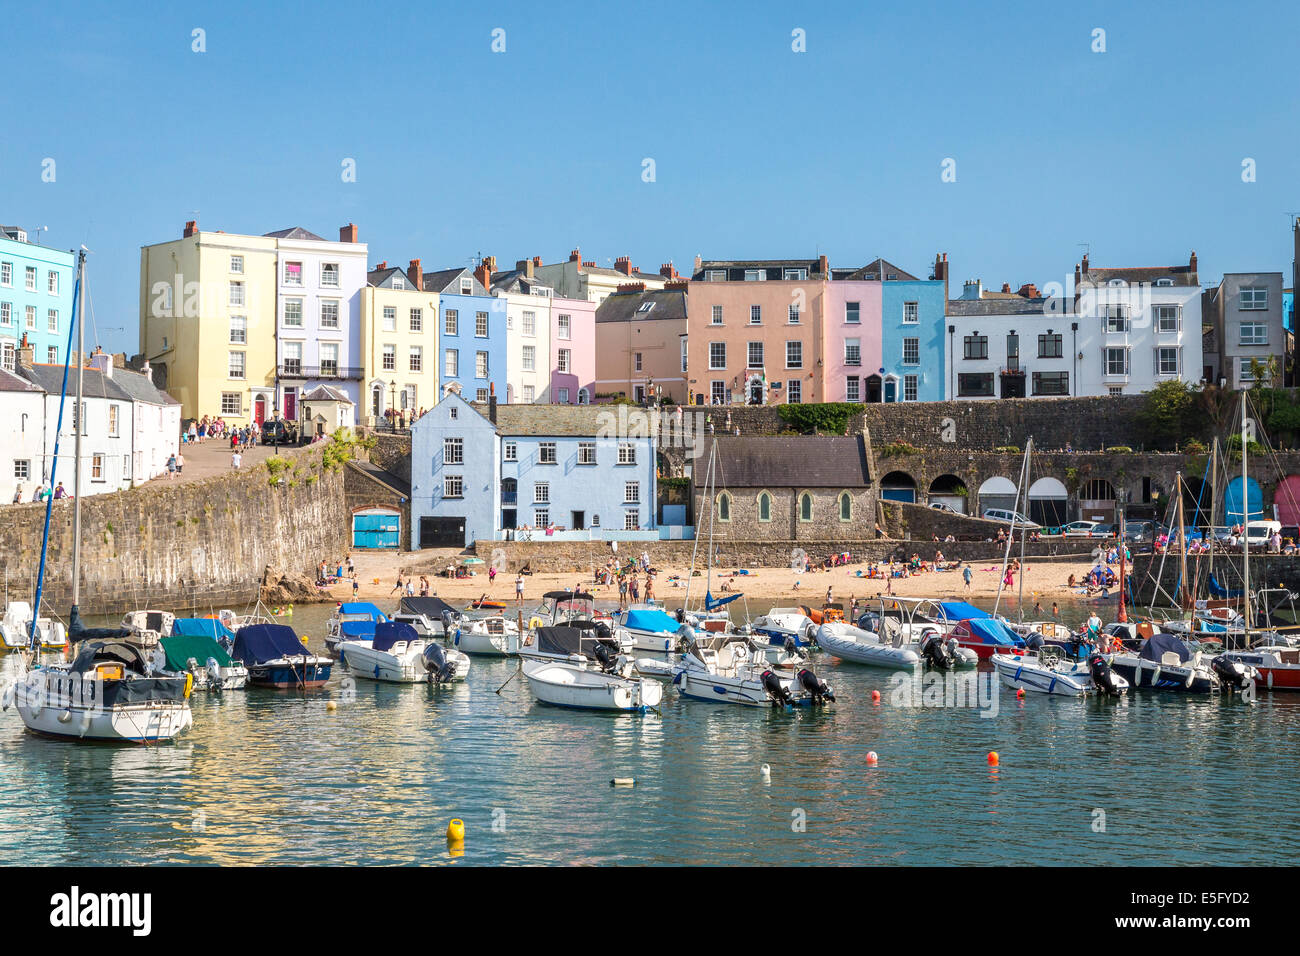 Tenby harbour full of boats on a sunny afternoon, the picturesque seaside town in Pembrokeshire, Wales - Stock Image